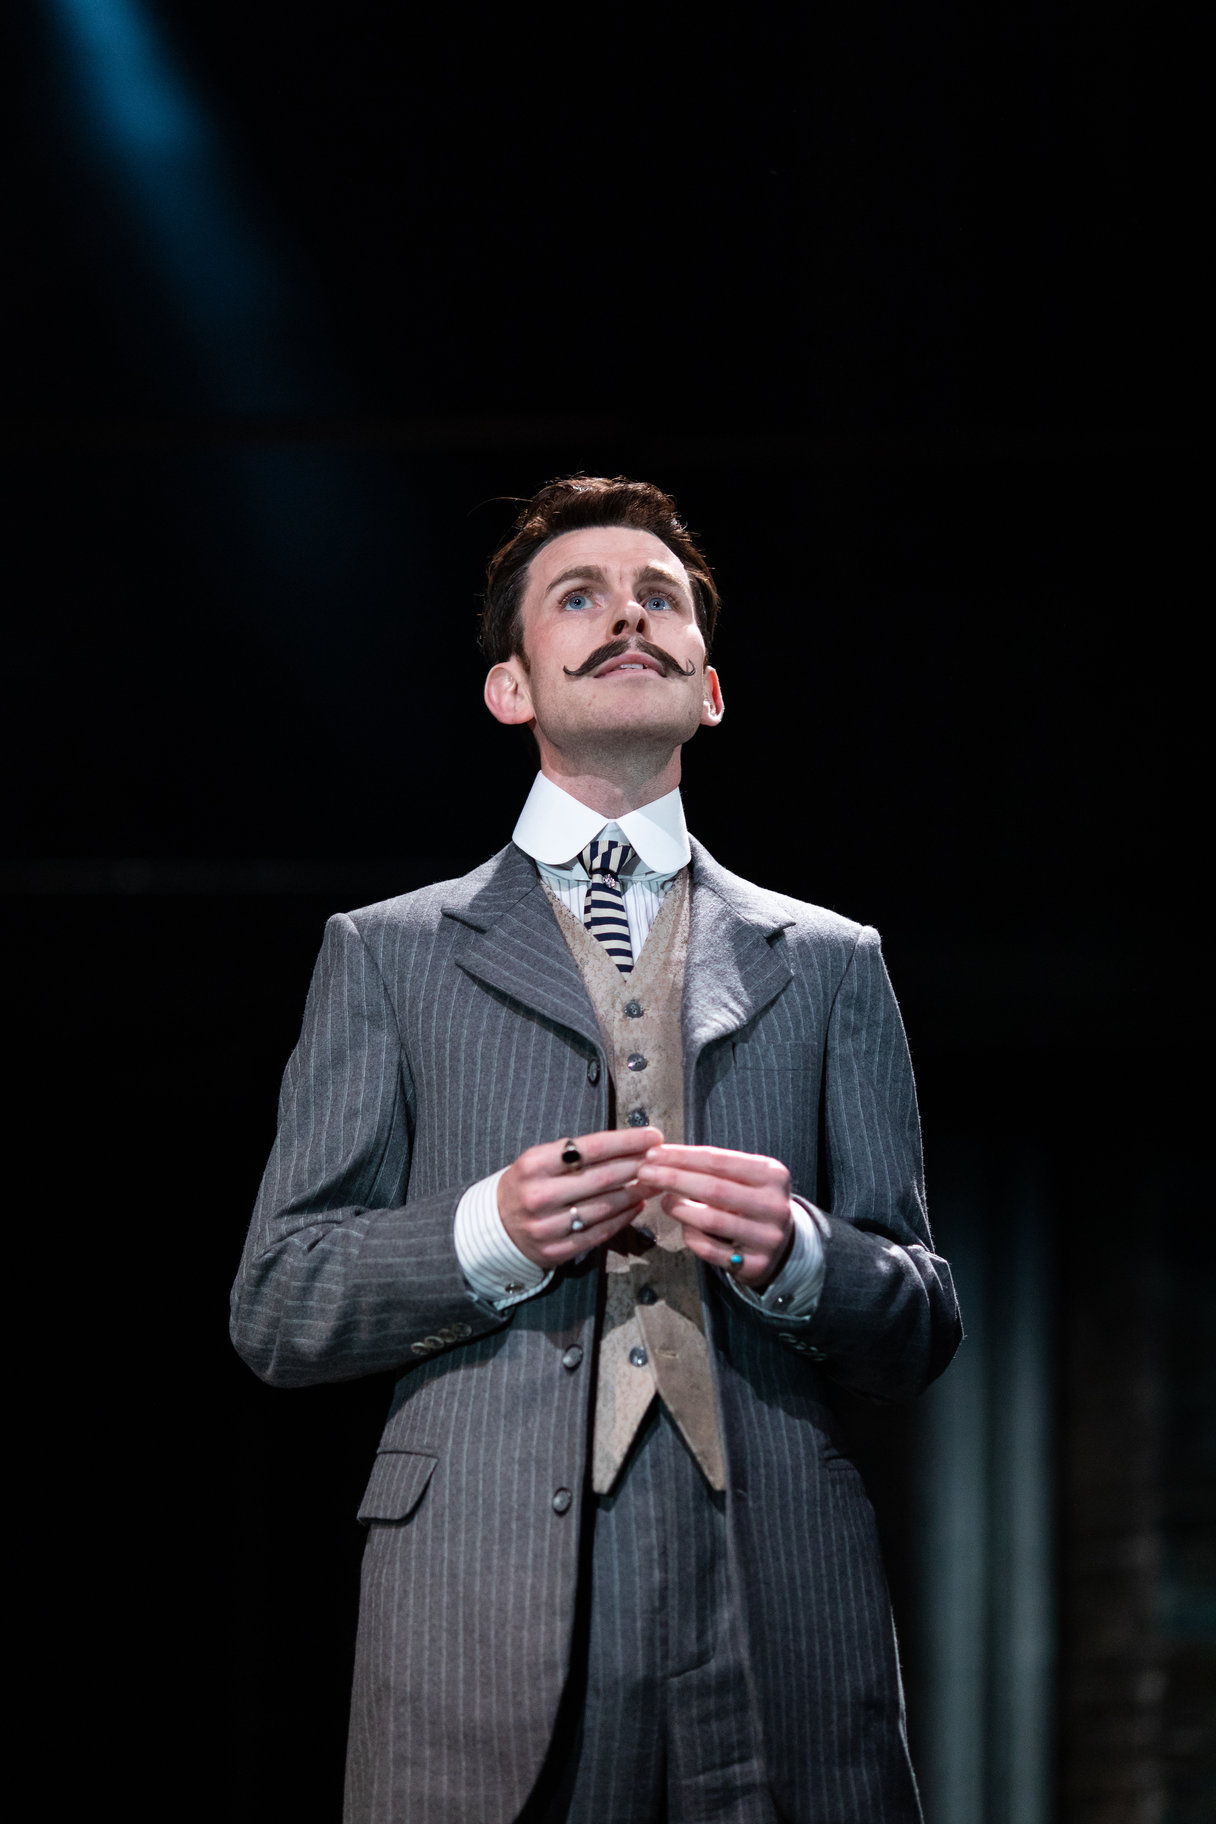 A man in a pin stripe suit with a curled moustache.